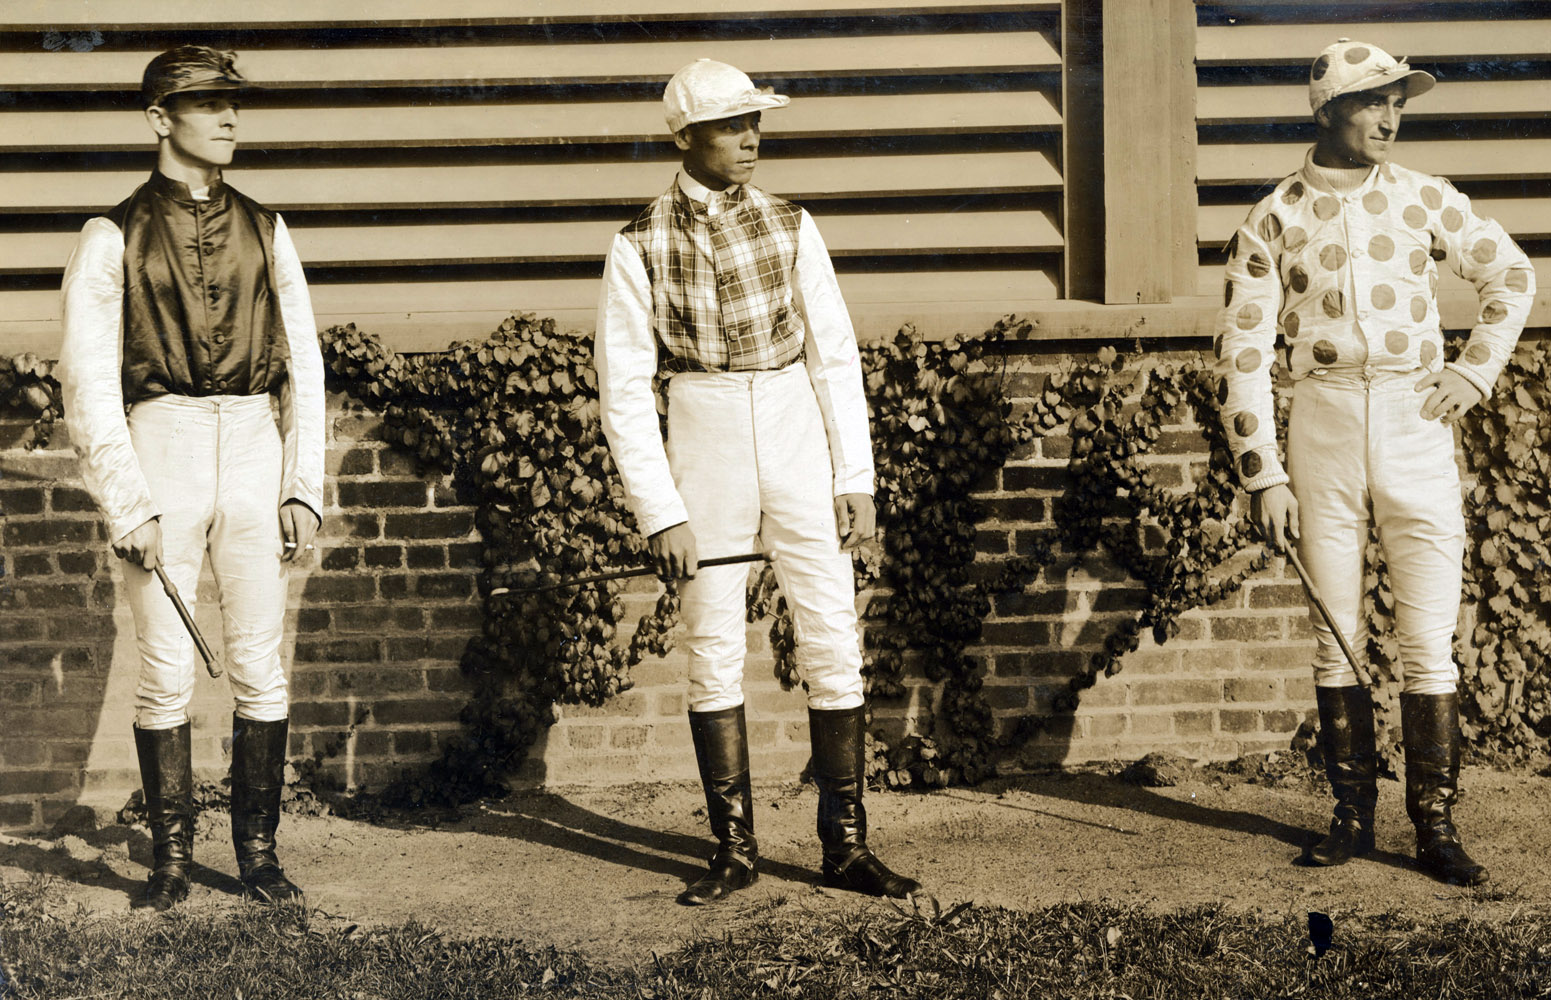 Jockeys Sam Doggett, Willie Simms, and Fred Taral in 1894 (Keeneland Library Hemment Collection)